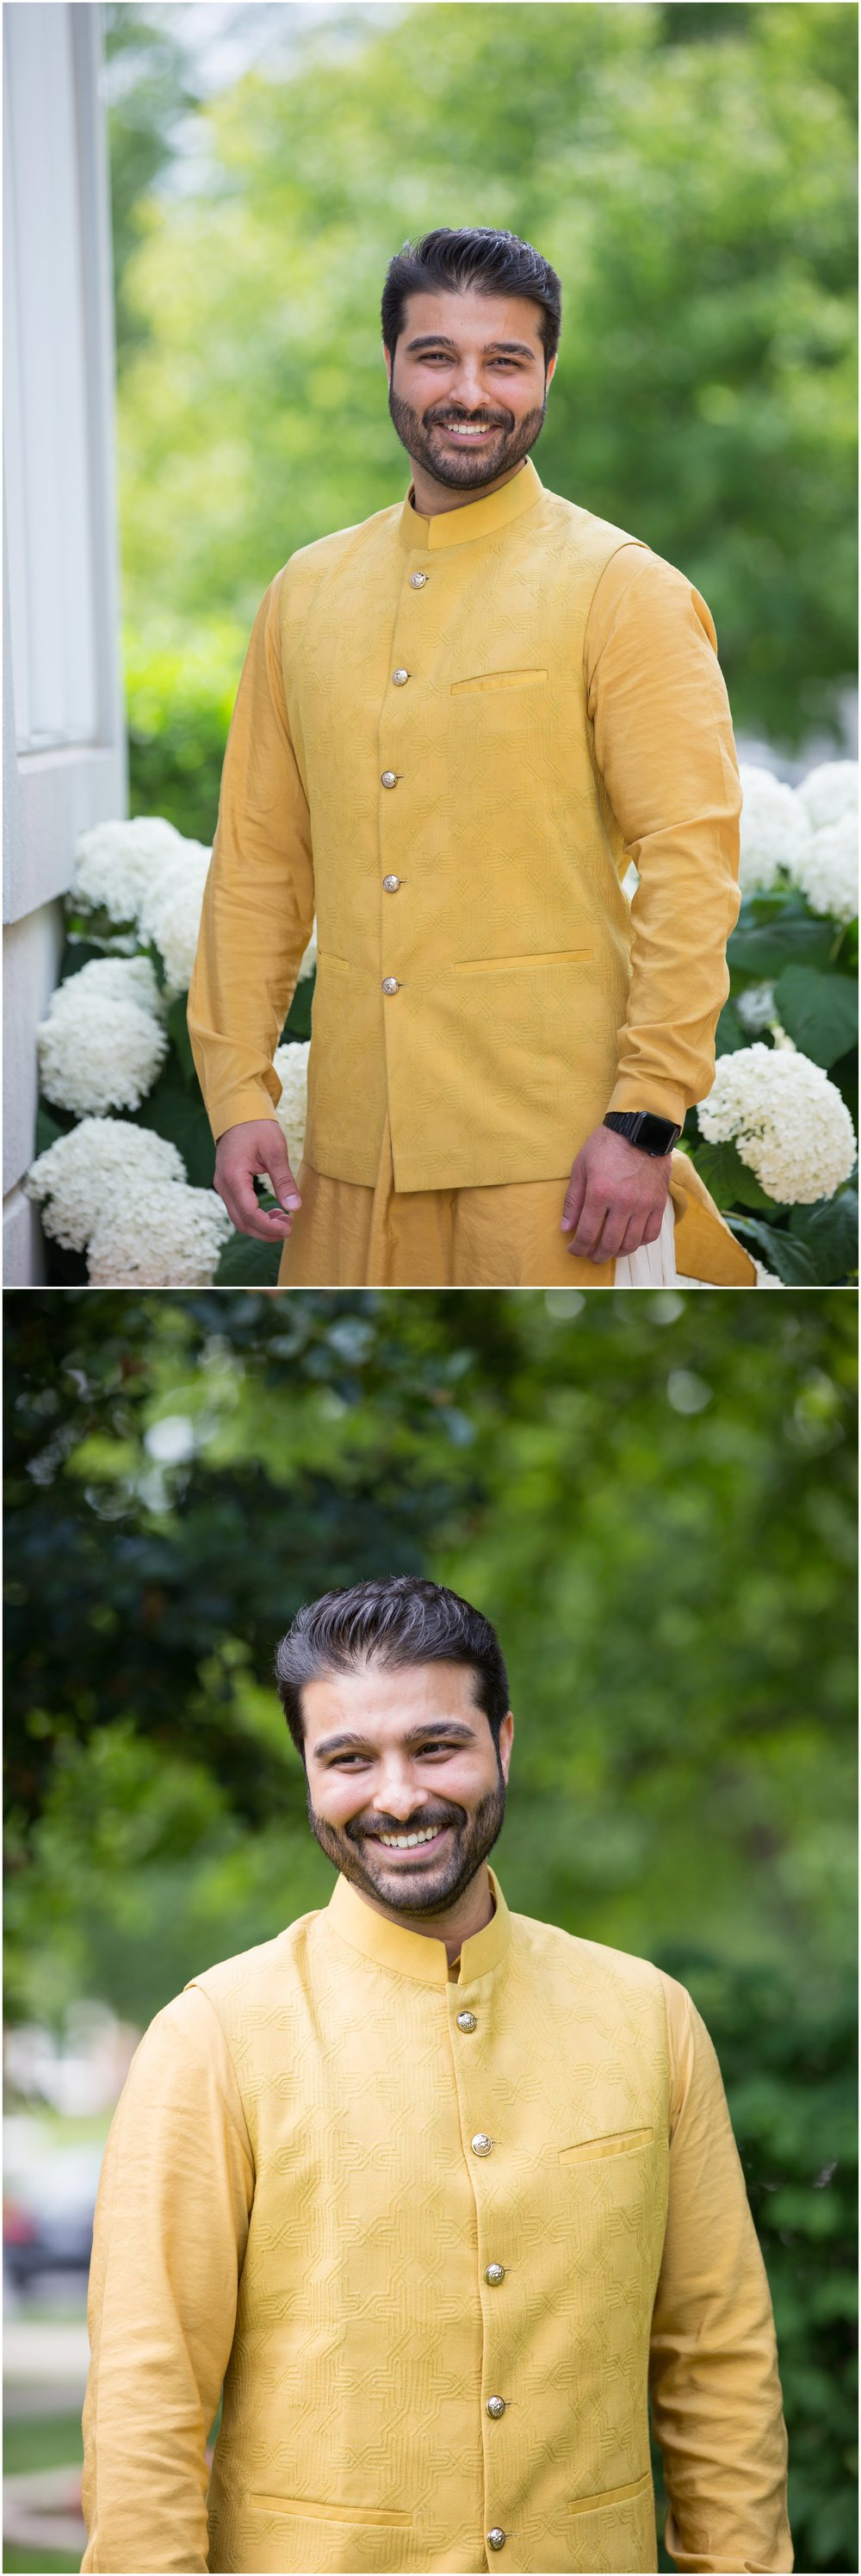 Le Cape Weddings - South Asian Wedding in Illinois - Tanvi and Anshul -3270_LuxuryDestinationPhotographer.jpg